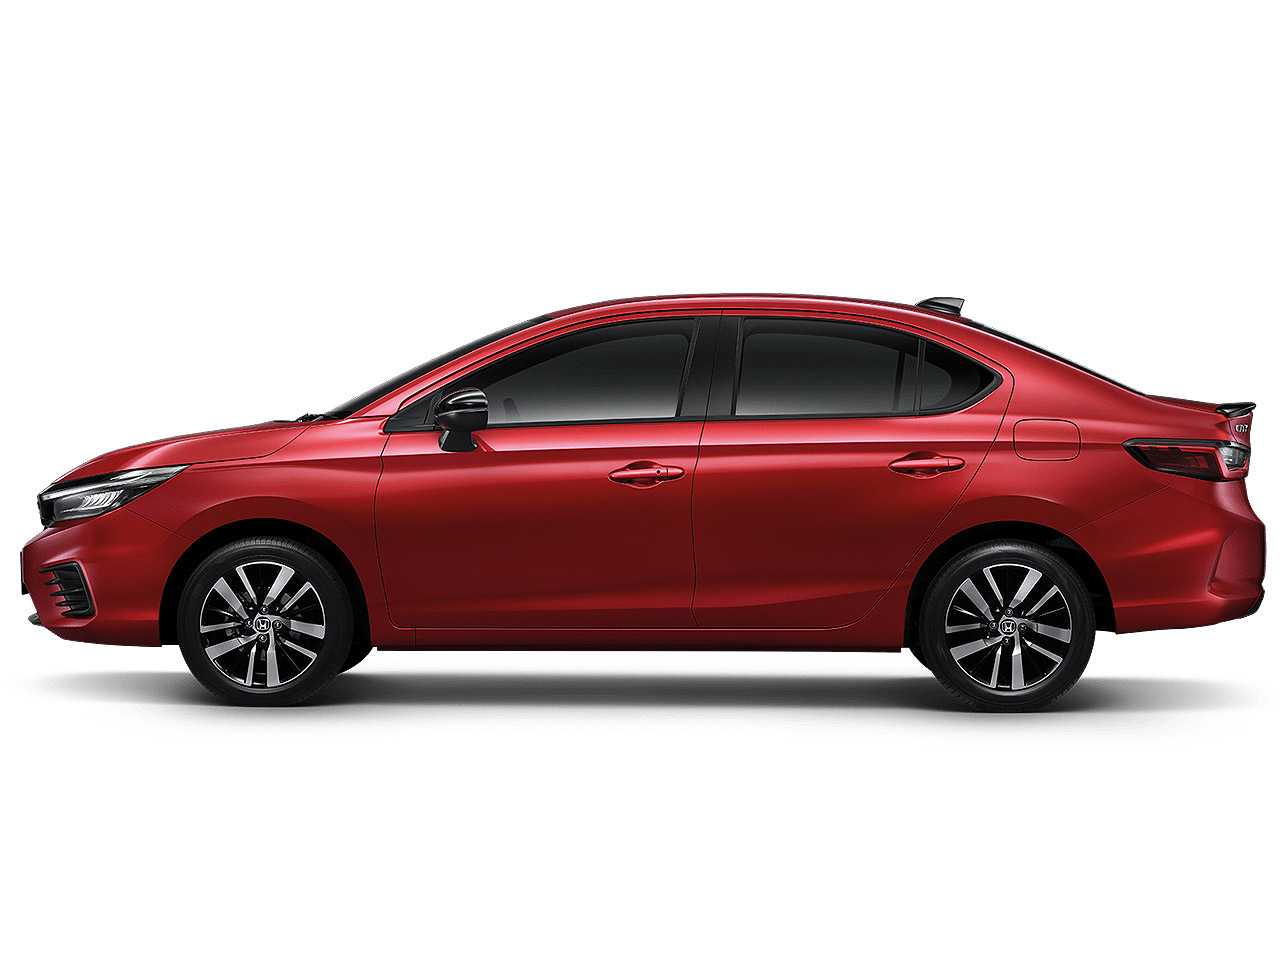 Honda City 2021 - lateral